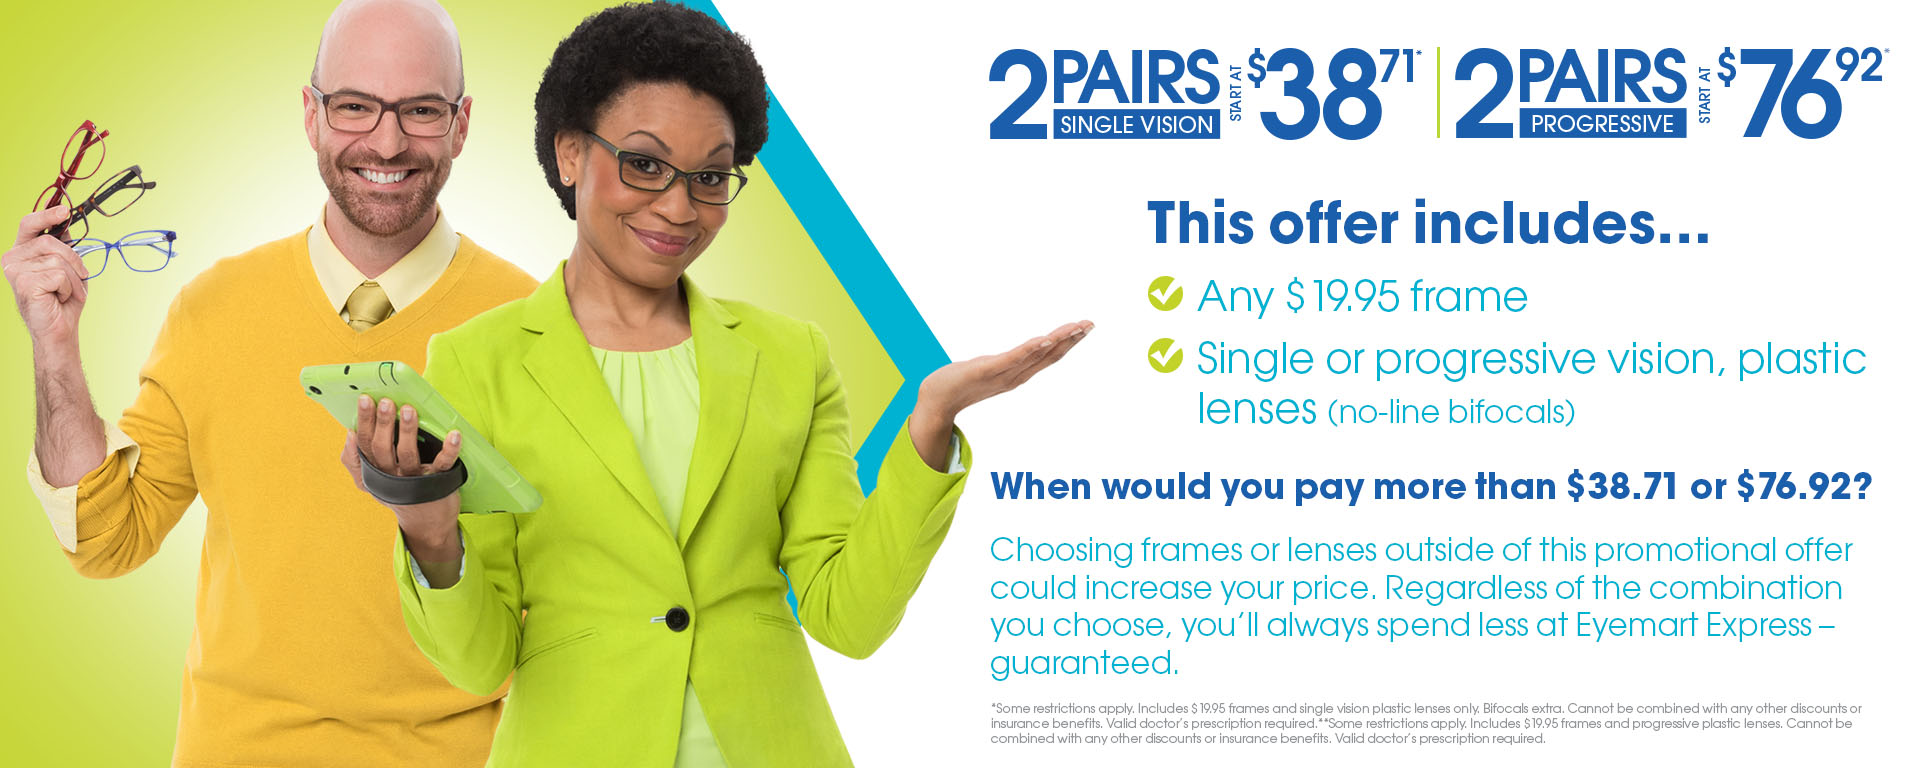 38.71: Includes $19.95 frames and Single Vision plastic lenses. Bifocals are extra. This offer cannot be combined with any other discounts or insurance. Valid doctor's prescription is required. 76.92 Includes $19.95 frames and plastic Progressive lenses. This offer cannot be combined with any other discounts or insurance. Valid doctor's prescription is required.